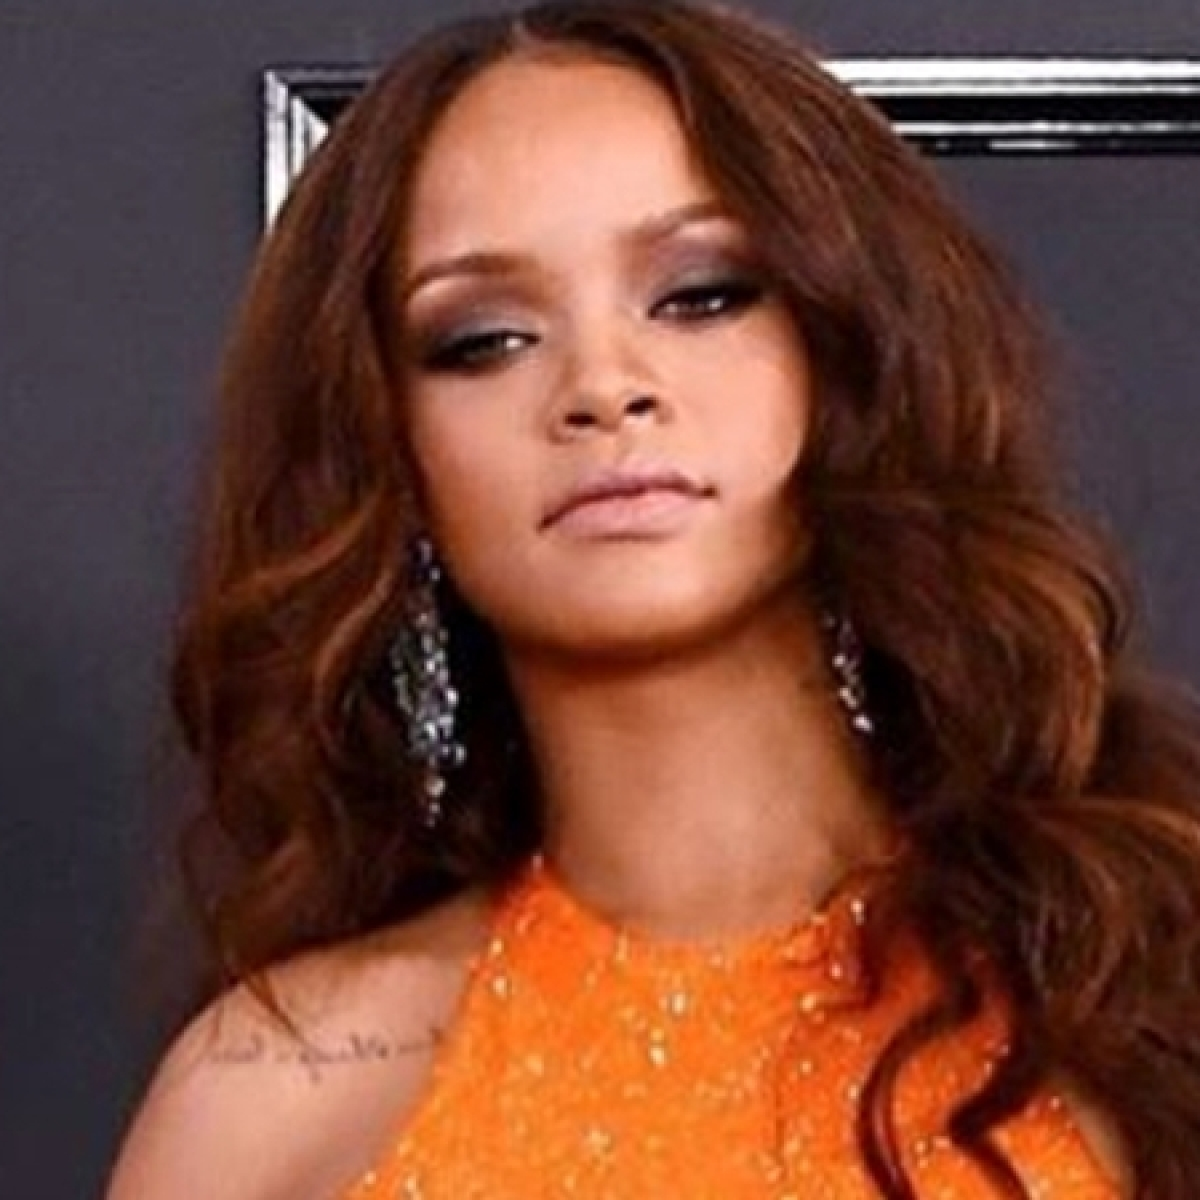 Rihanna has the perfect response to trolling fans who want her to release new music